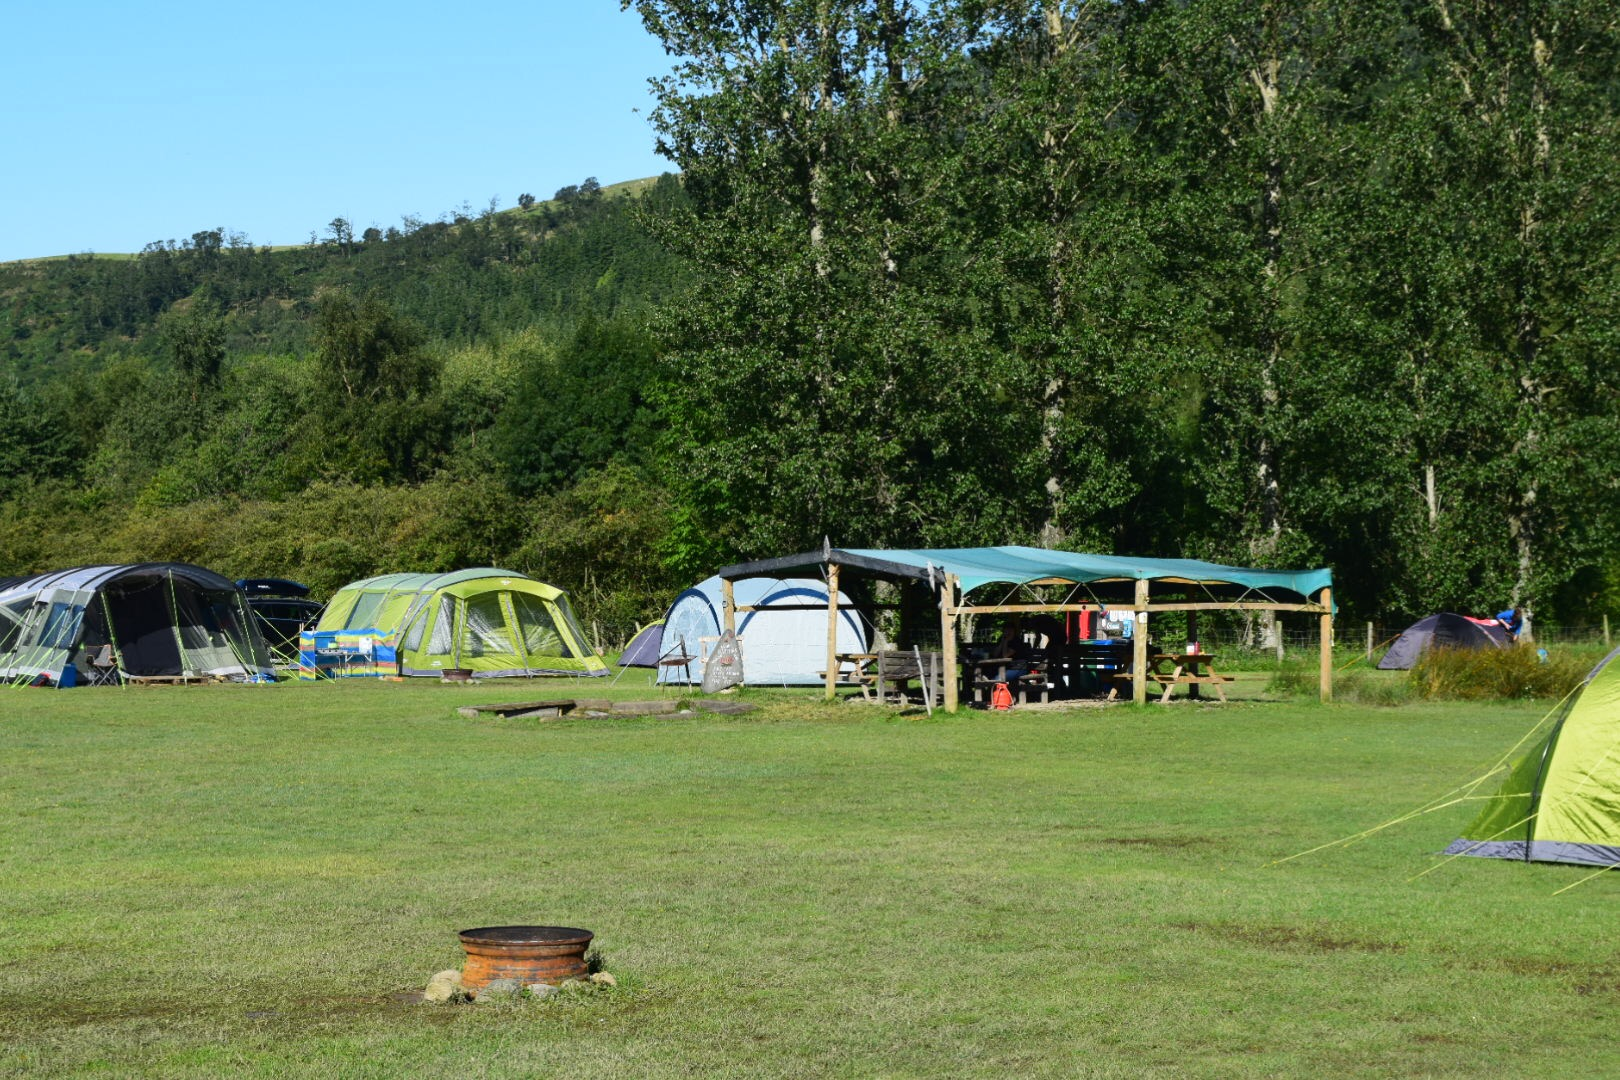 Kestrel lodge campsite